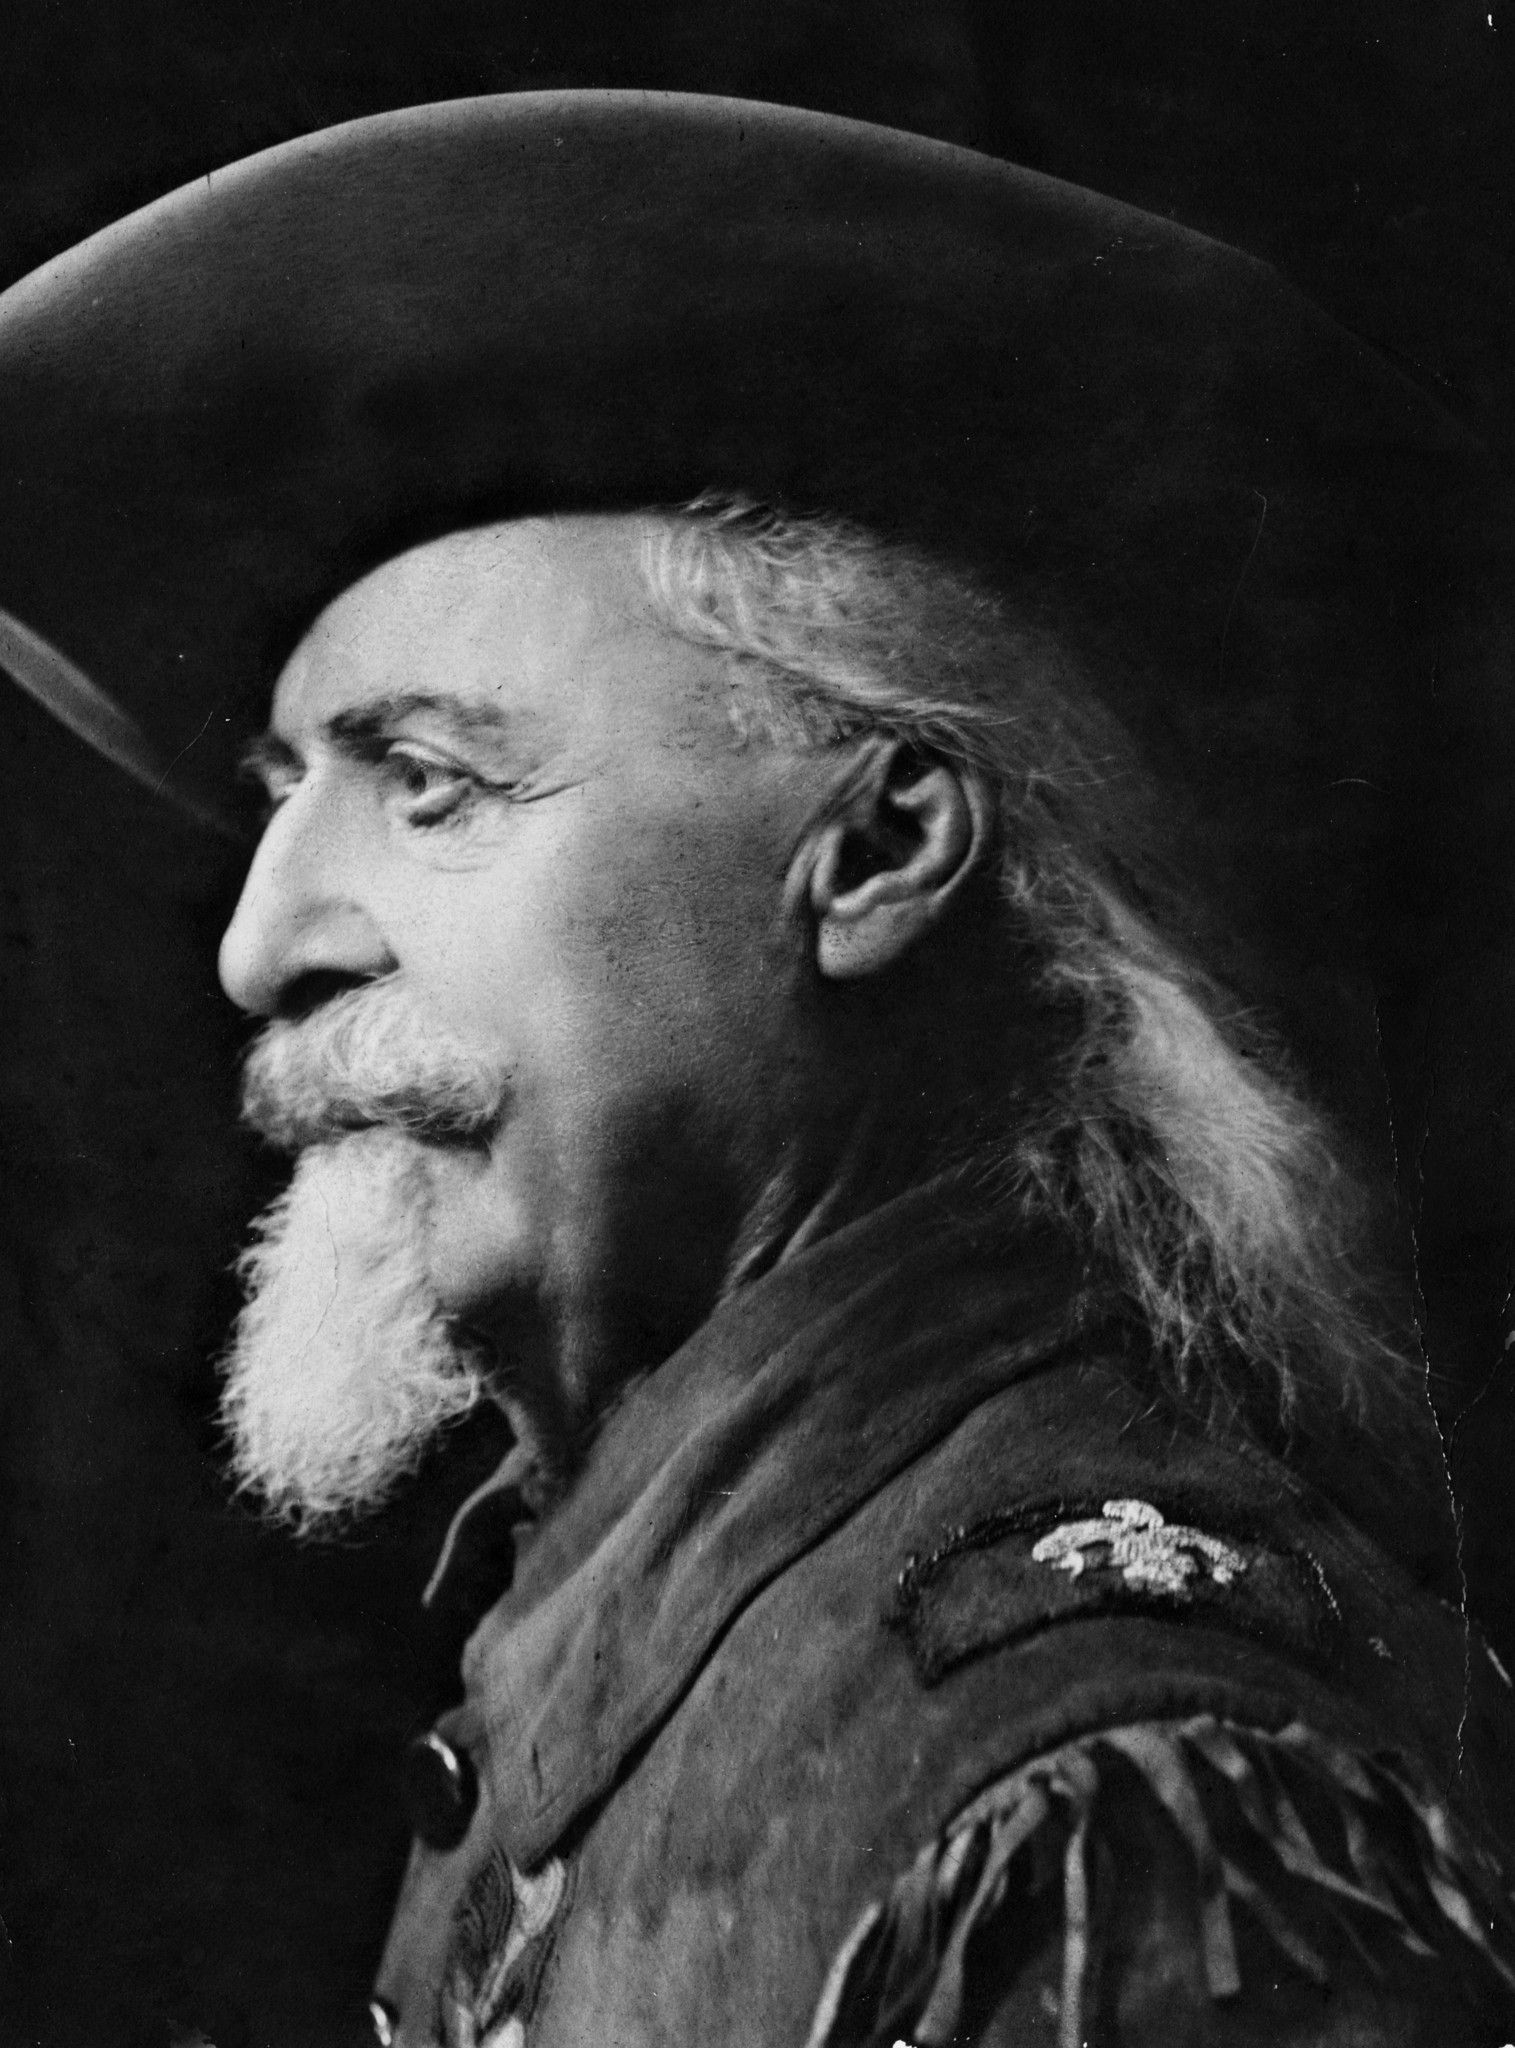 A Colt Frontier six-shooter revolver and grizzly bear claw necklace that once belonged to legendary Wild West figure Buffalo Bill Cody sold at auction in Dallas for $40,625 each, Heritage Auctions said on Monday.